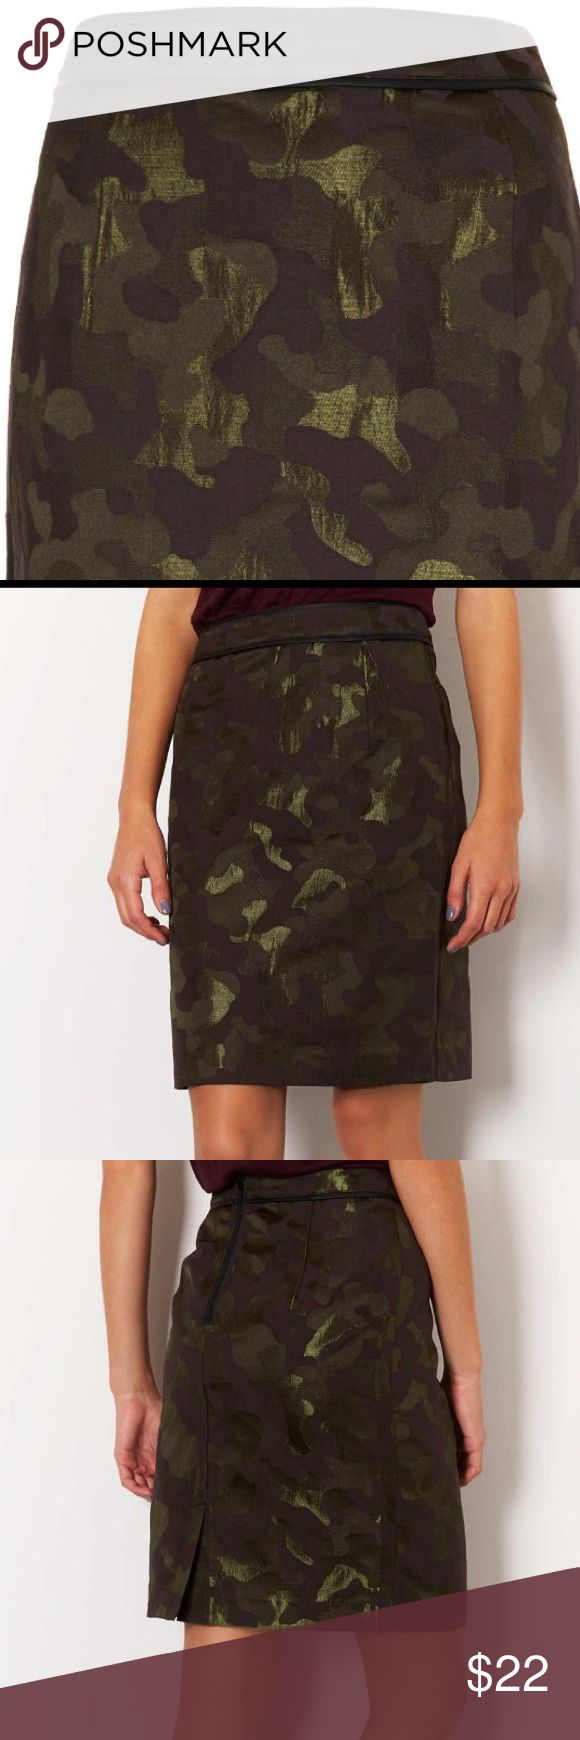 """Topshop Camo Jacquard Pencil Skirt in multi color Khaki jacquard camo pencil skirt mult colors. Black faux leather trim around waist. Back zipper closure and slit. Fabric: 59% cotton and 41% polyester. Measurements: 15"""" waist, length 21.5"""". Unlined. Machine washable. Skirt has a few flaws at the side seams. Topshop Skirts Pencil"""